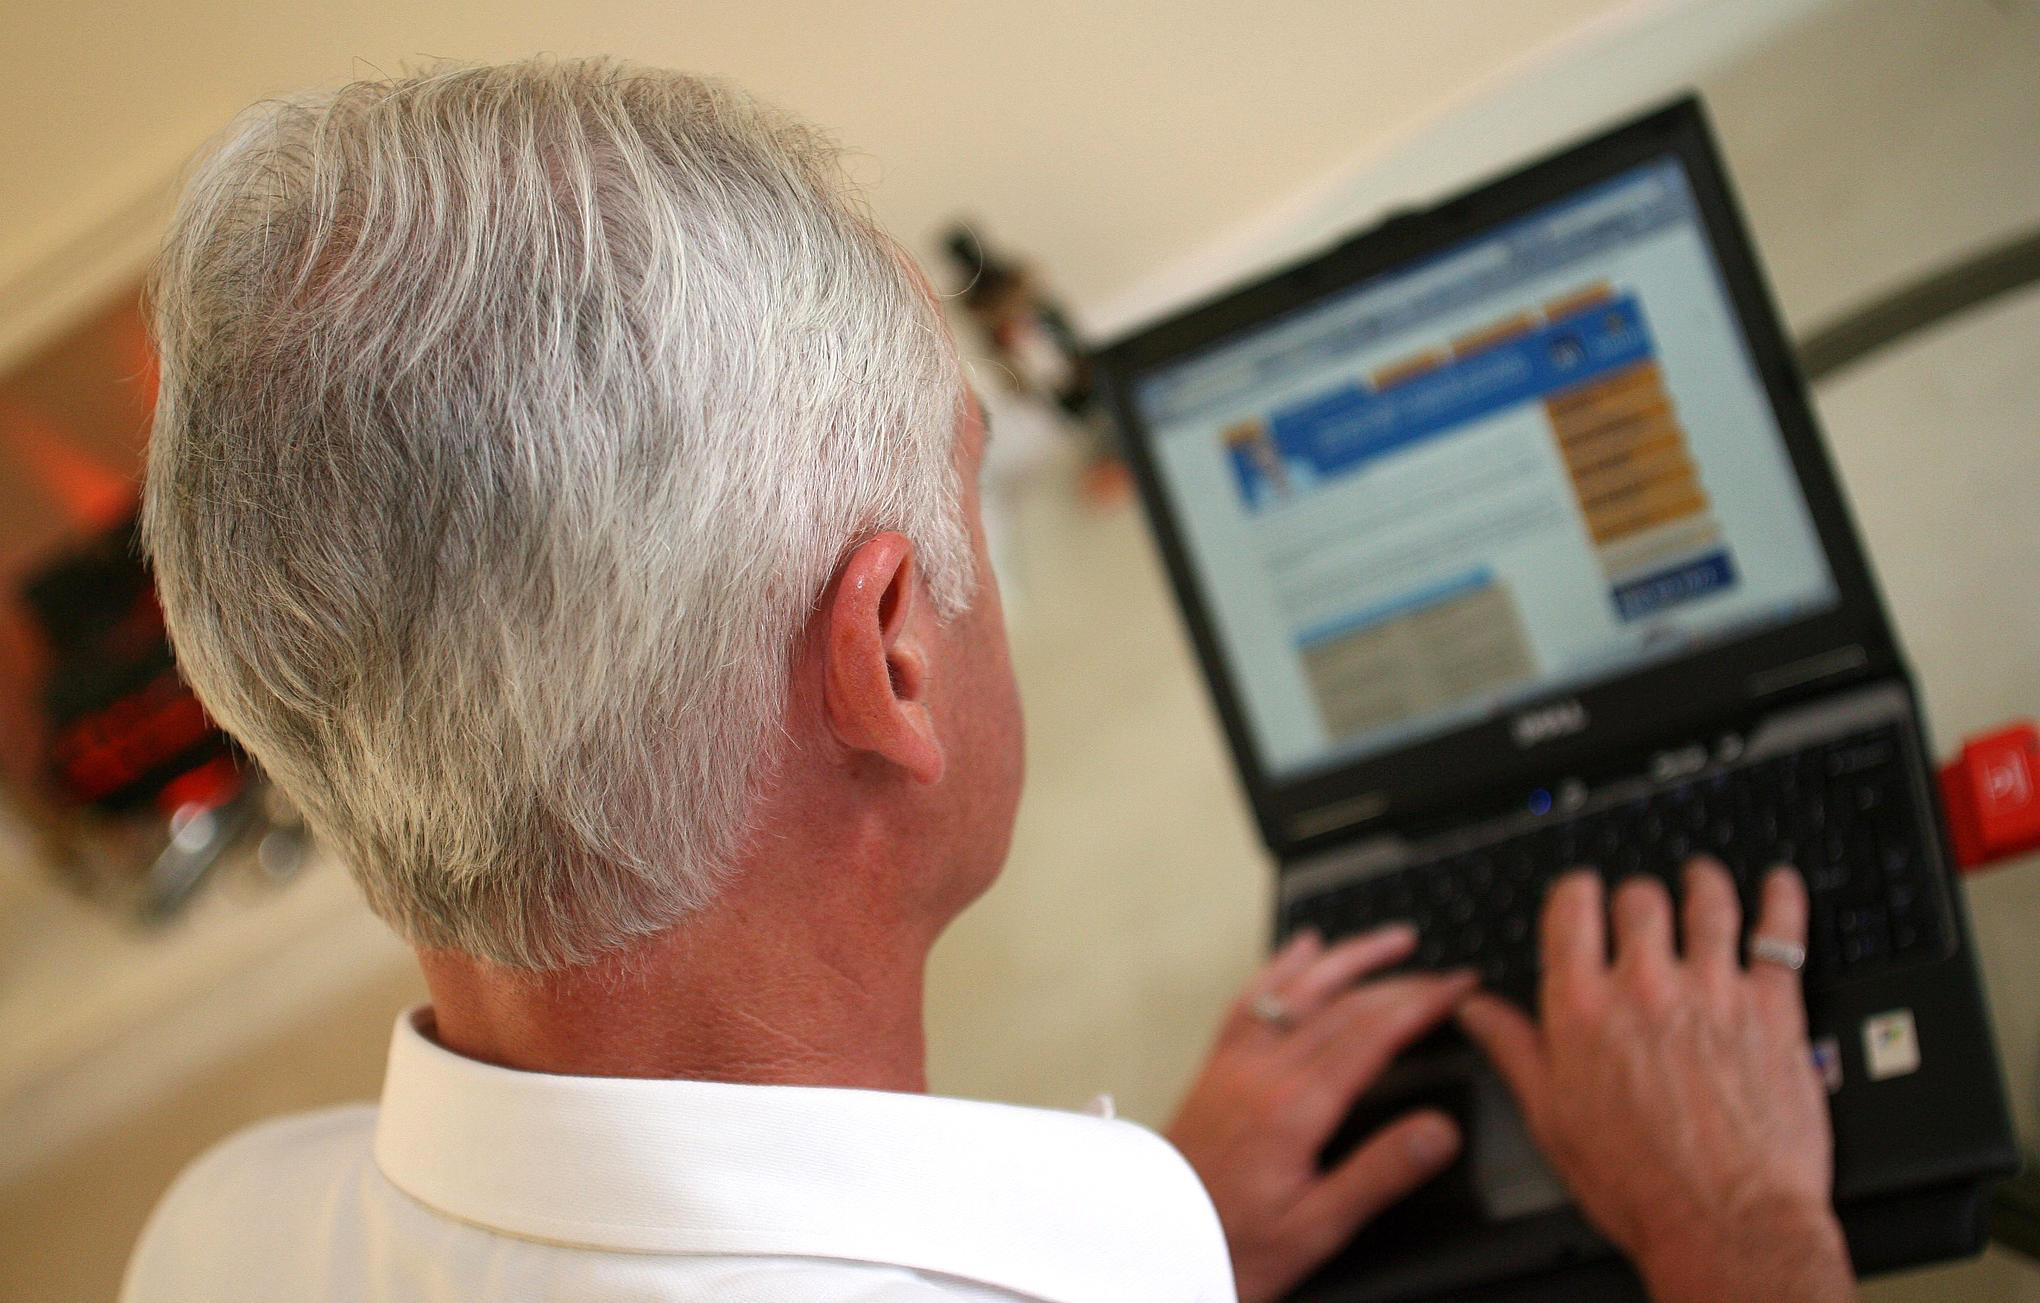 Jason Axford, one of Care UK's lead experts on older people's wellbeing, has said that encouraging the older generation to use Skype, FaceTime and Netflix can make them more involved at Christmas and beyond for (Peter Byrne/PA Wire)